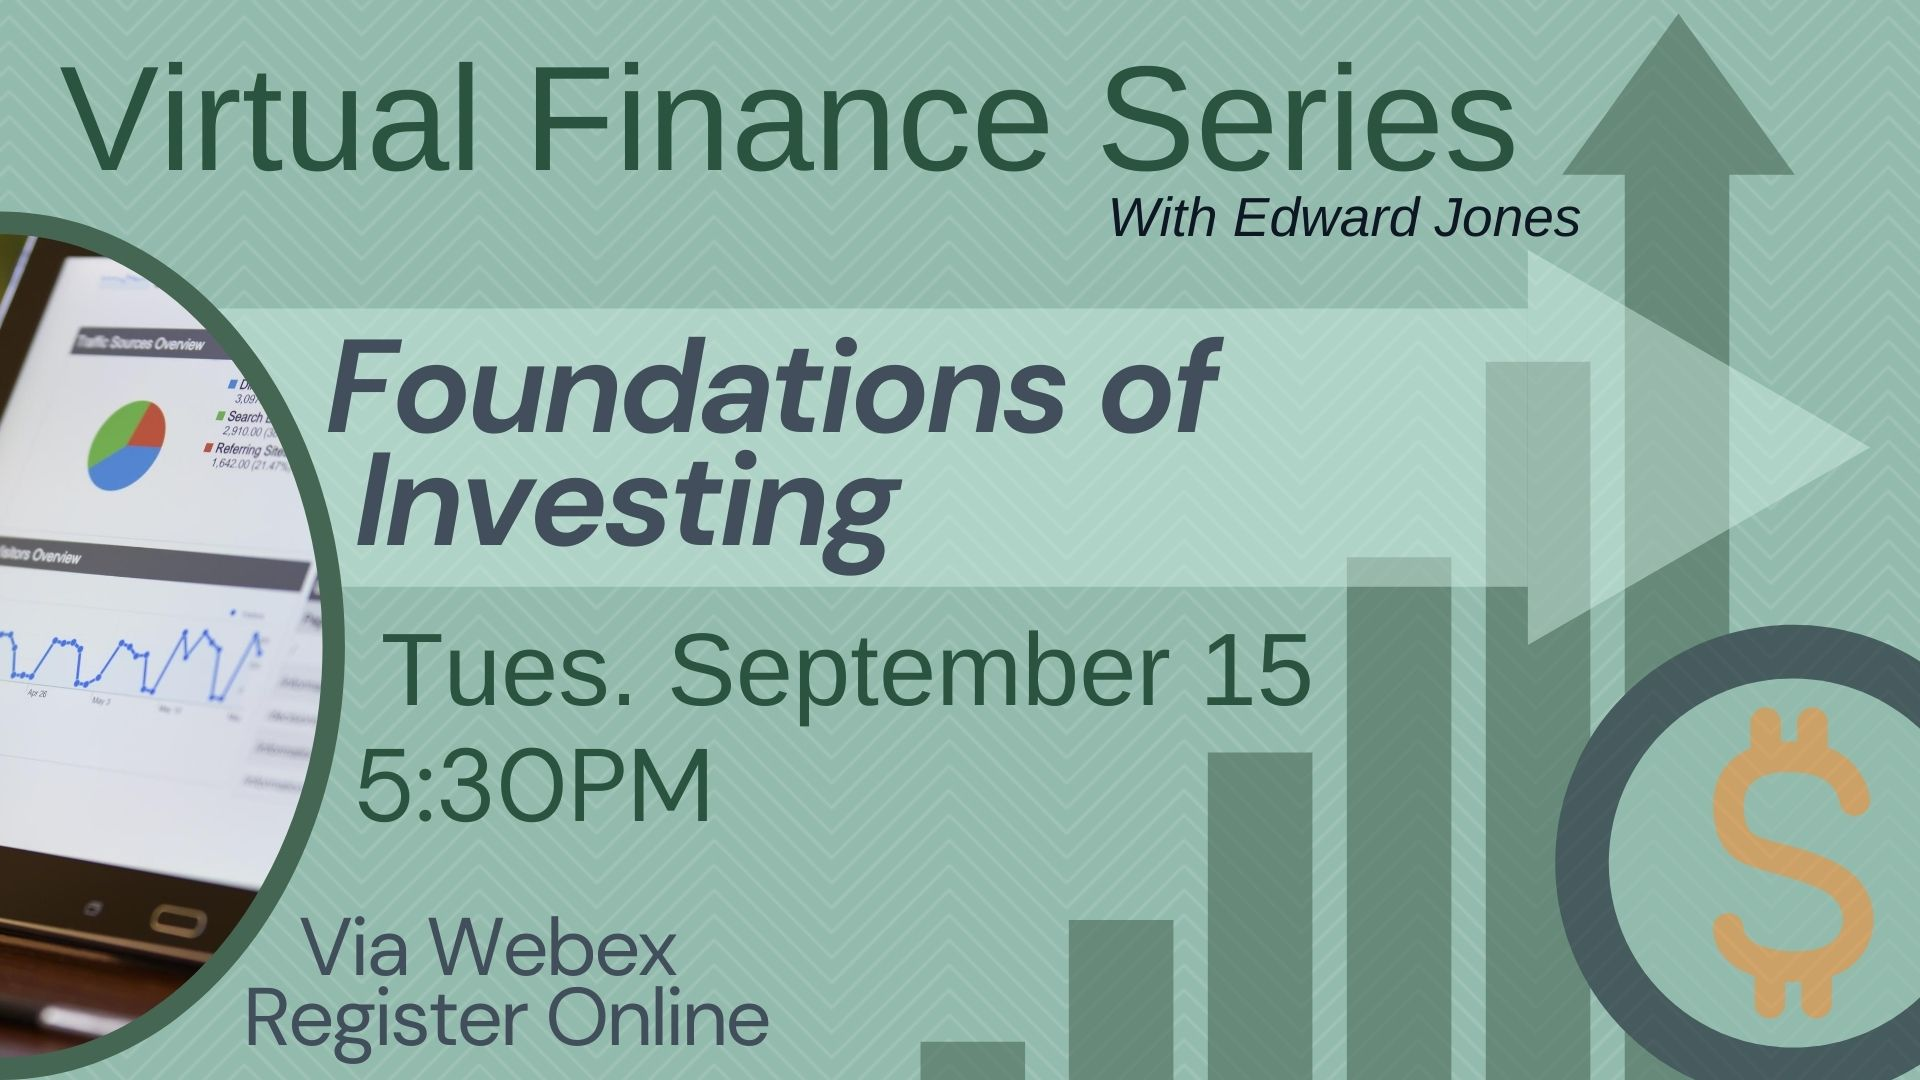 Virtual Finance Series: Foundations of Investing